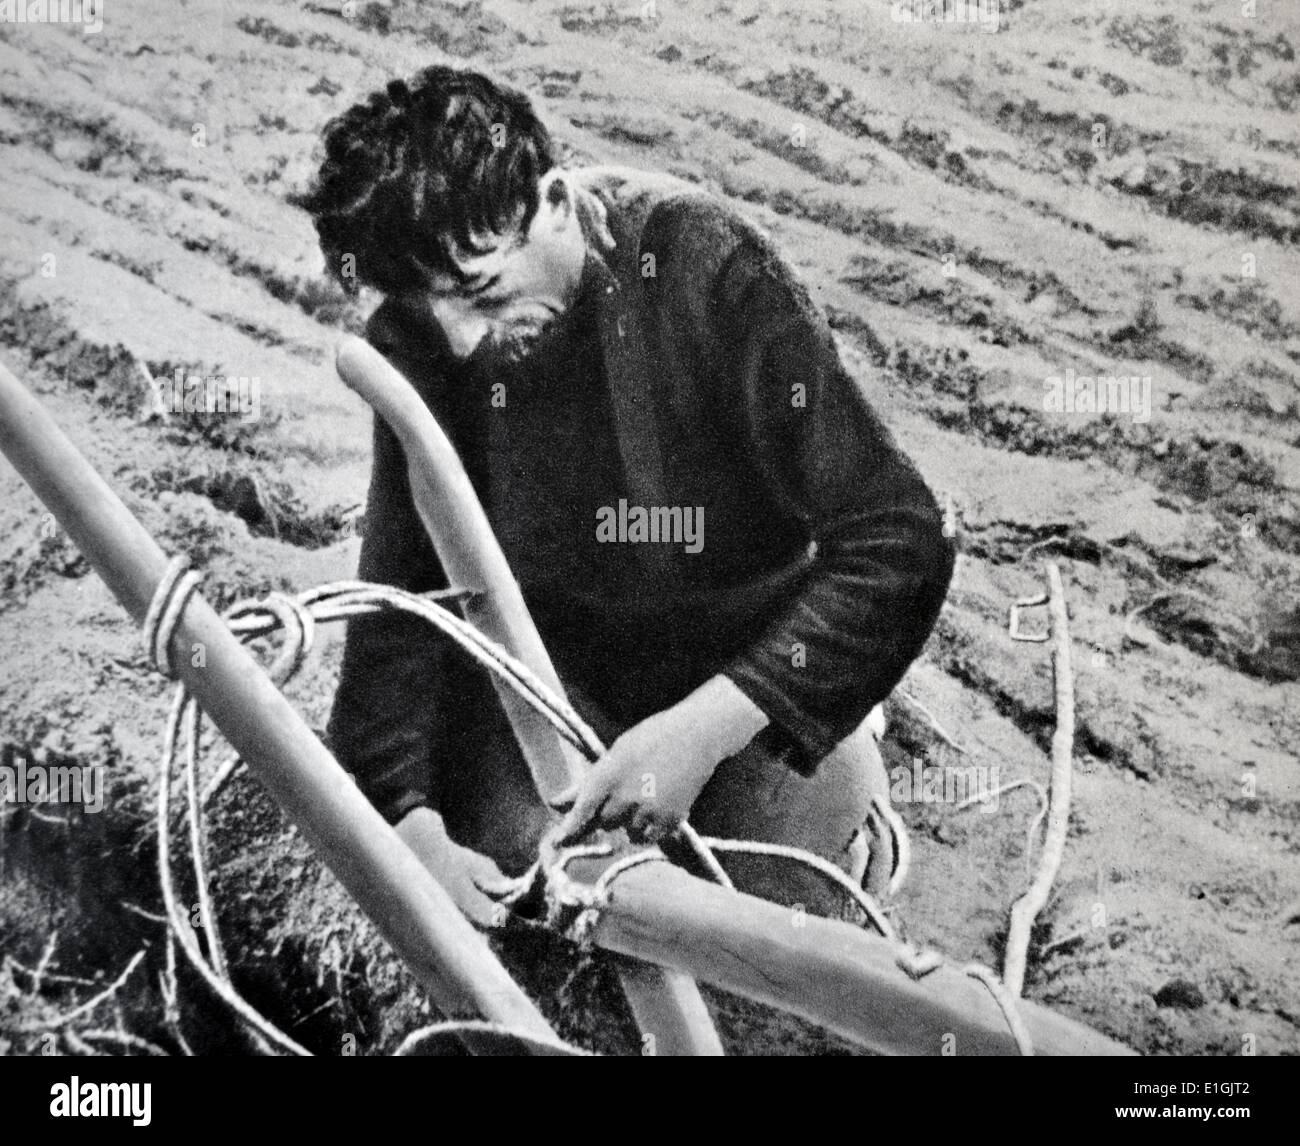 peasant farmer with his equipment in Russia, 1905 - Stock Image